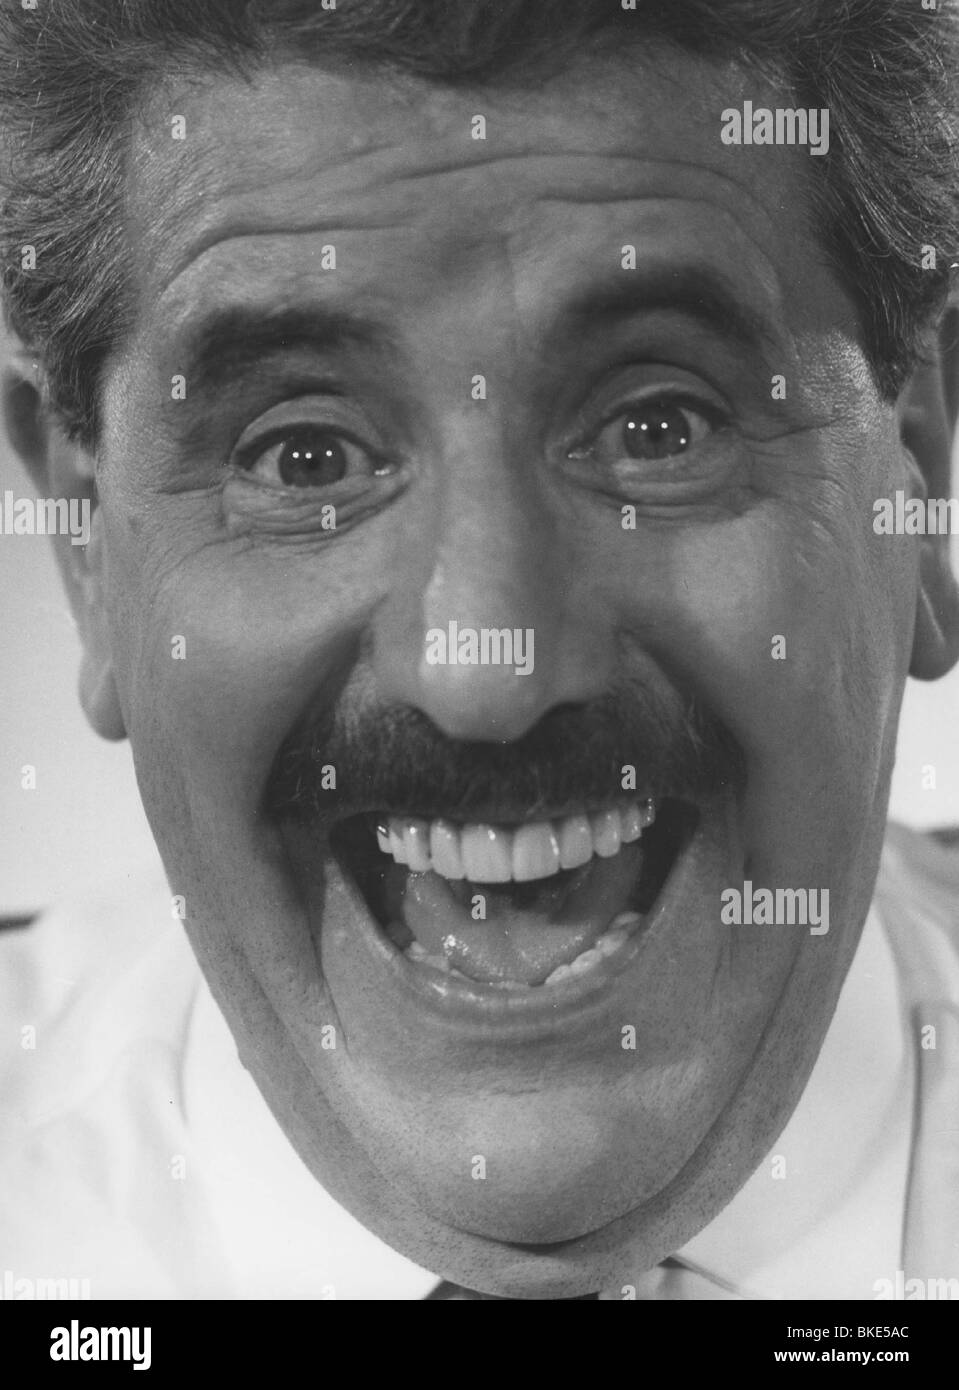 Millowitsch, Willy, 8.1.1909, - 20.9.1999, German actor, portrait, 1960s, Additional-Rights-Clearances-NA - Stock Image